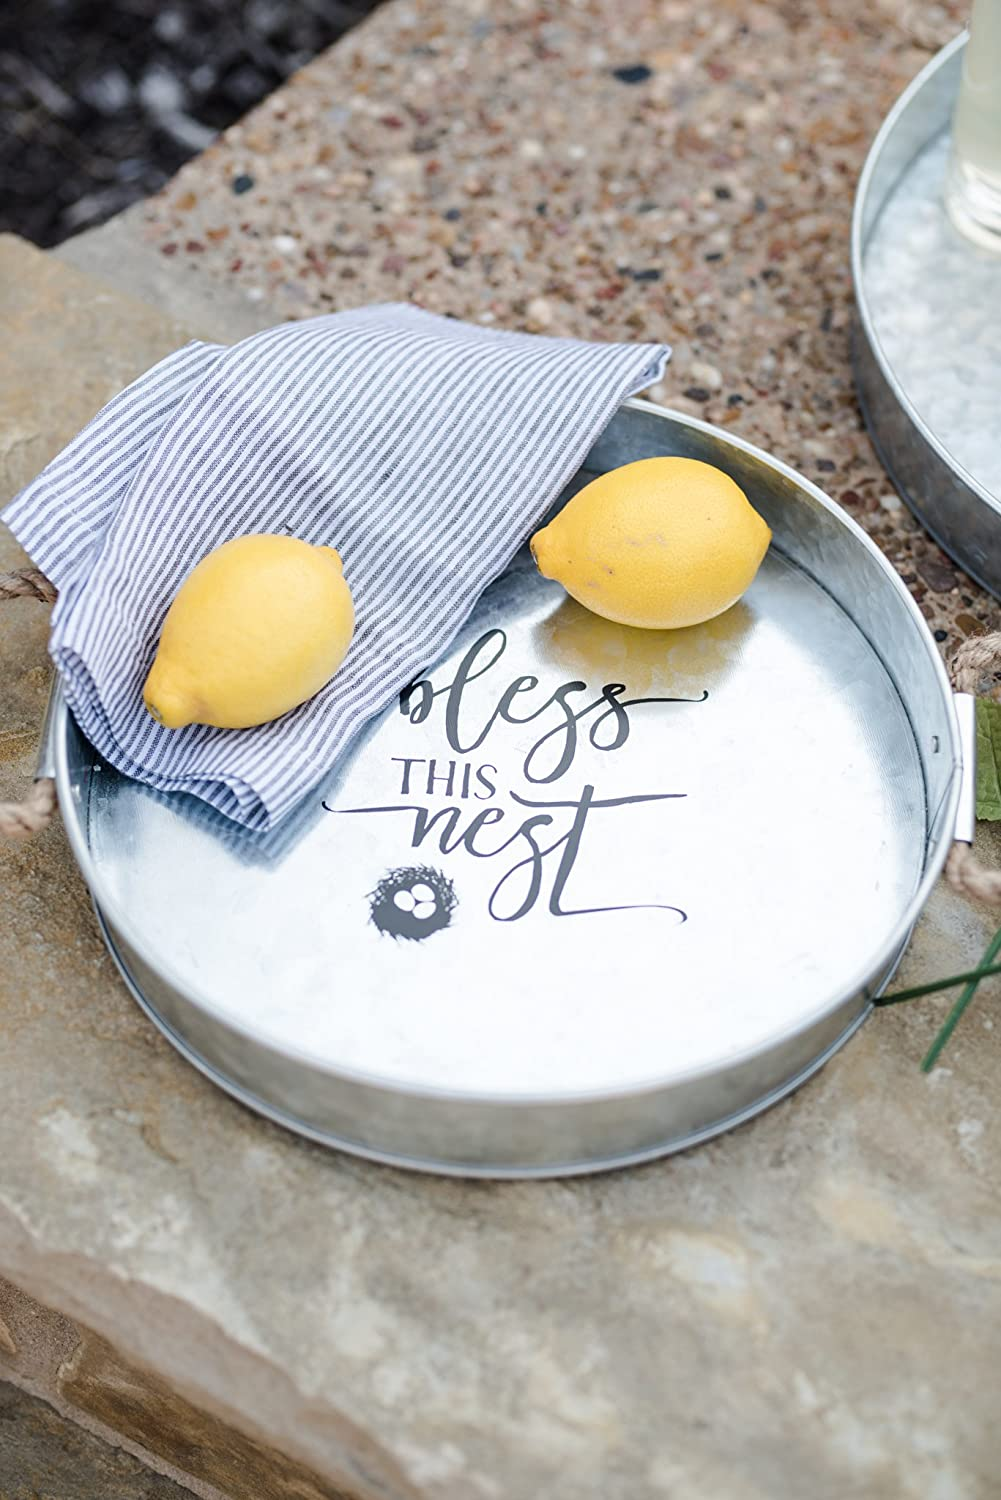 All Hearts Come Home For Christmas Brownlow Gifts Galvanized Metal Round Serving Tray